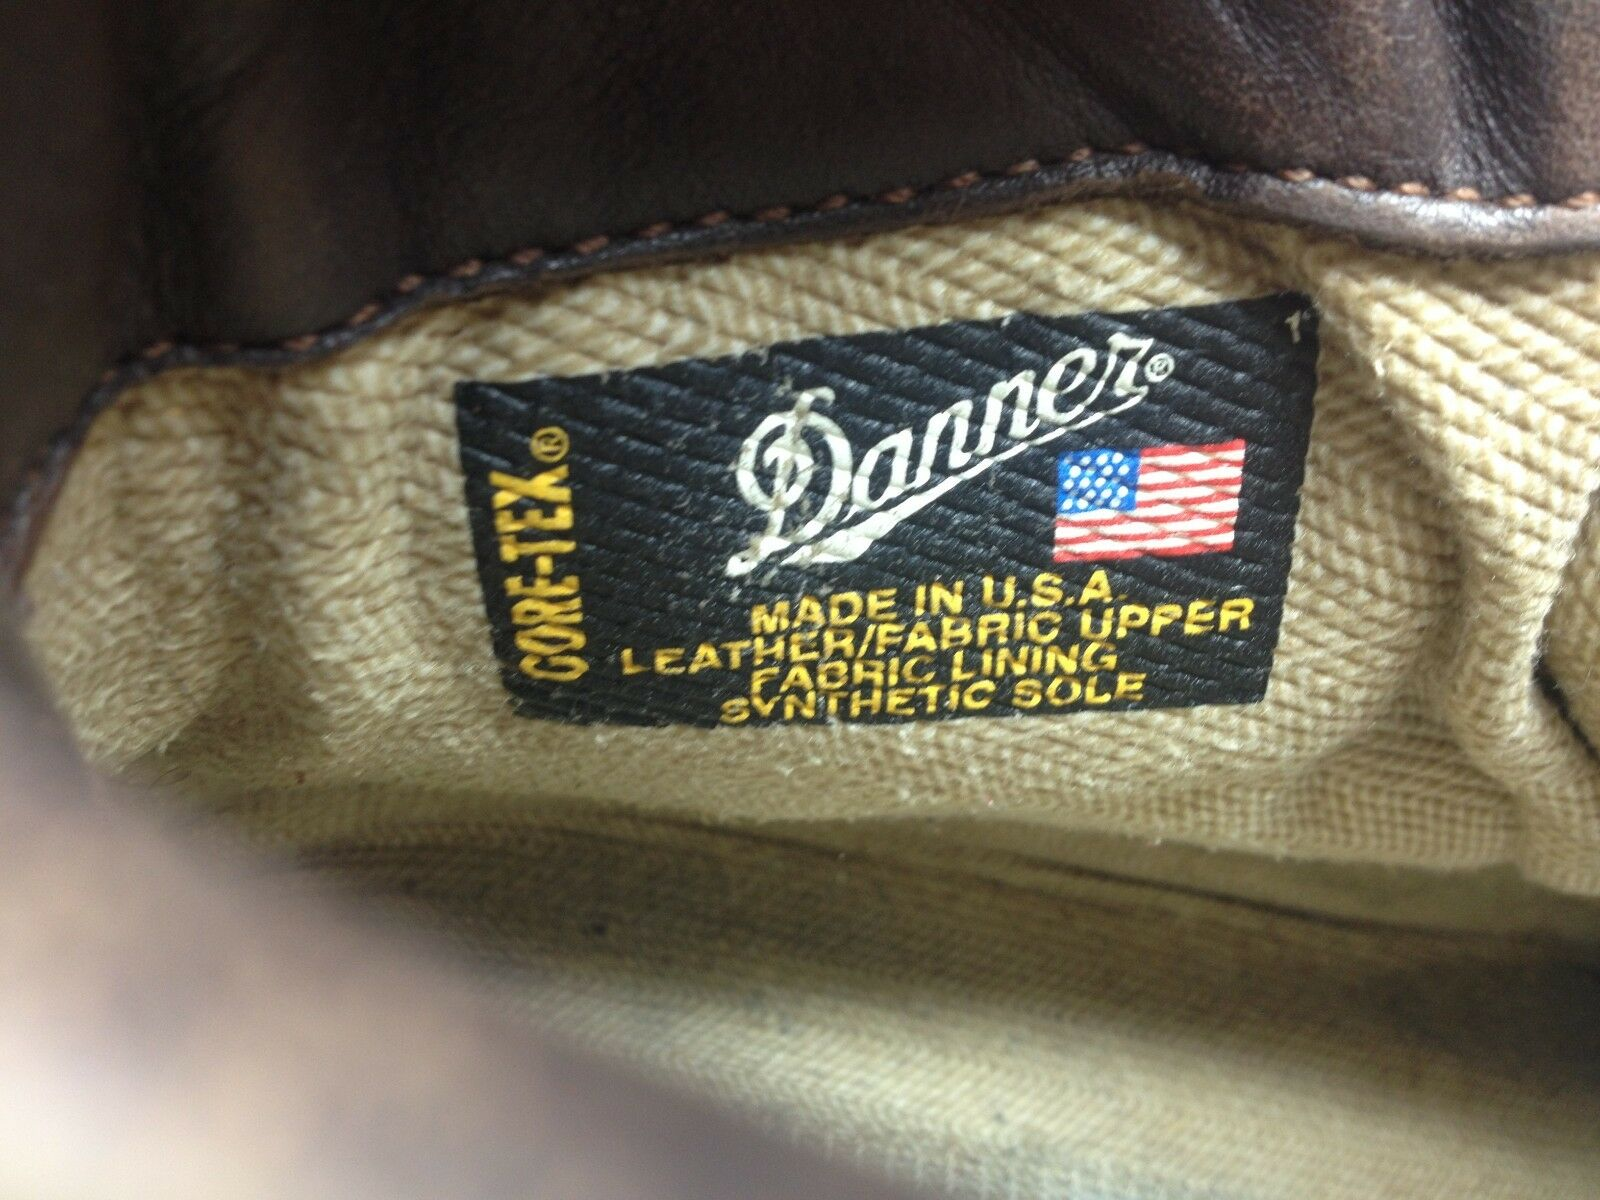 DISTRESSED DISTRESSED DISTRESSED DANNER MADE IN USA VINTAGE BROWN LEATHER LACE UP HIKING BOOTS 11D 5252b5